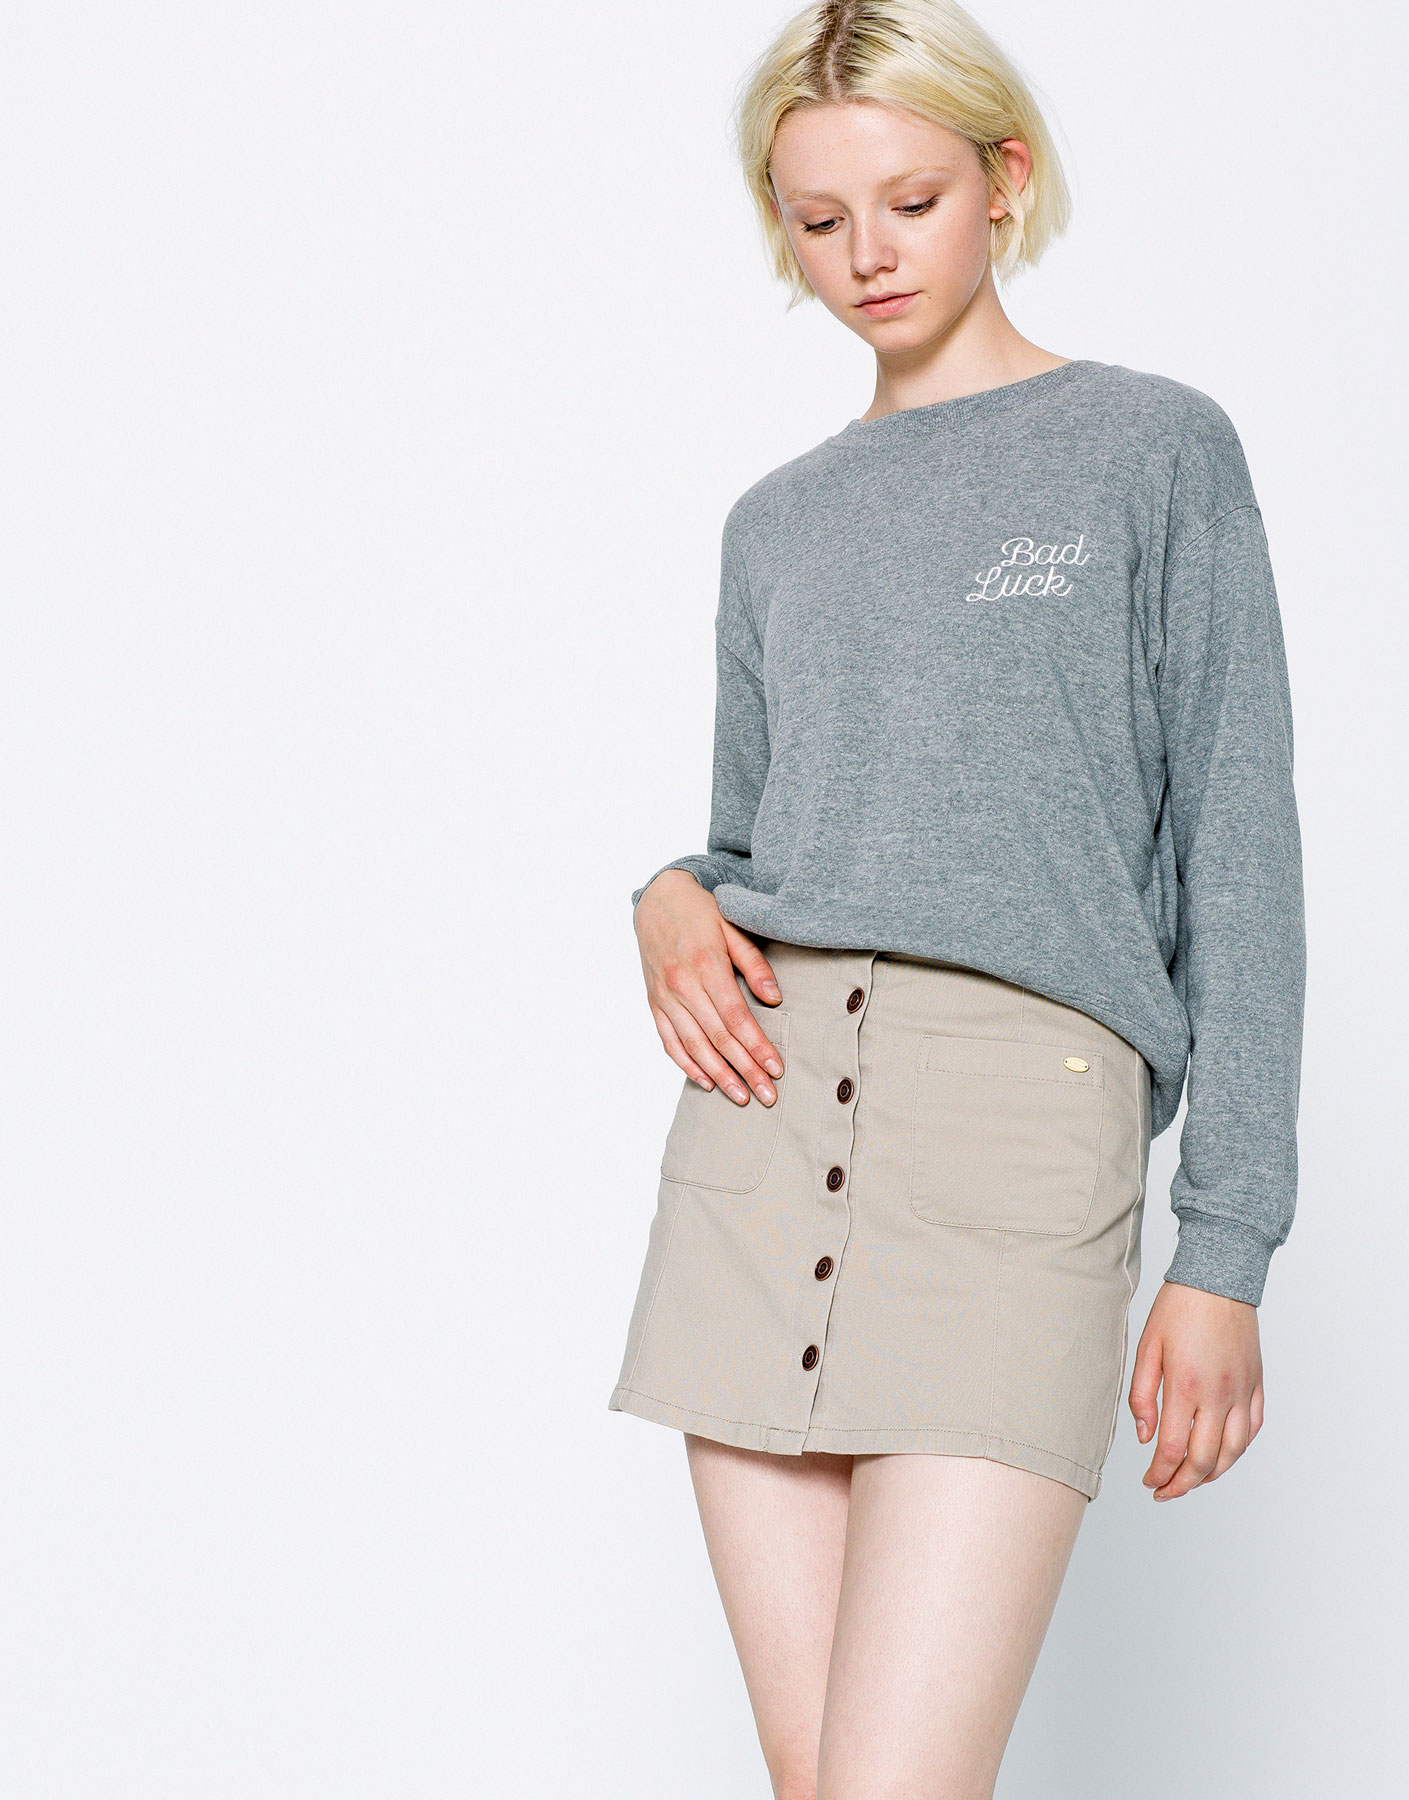 Skirt with pocket and front buttons